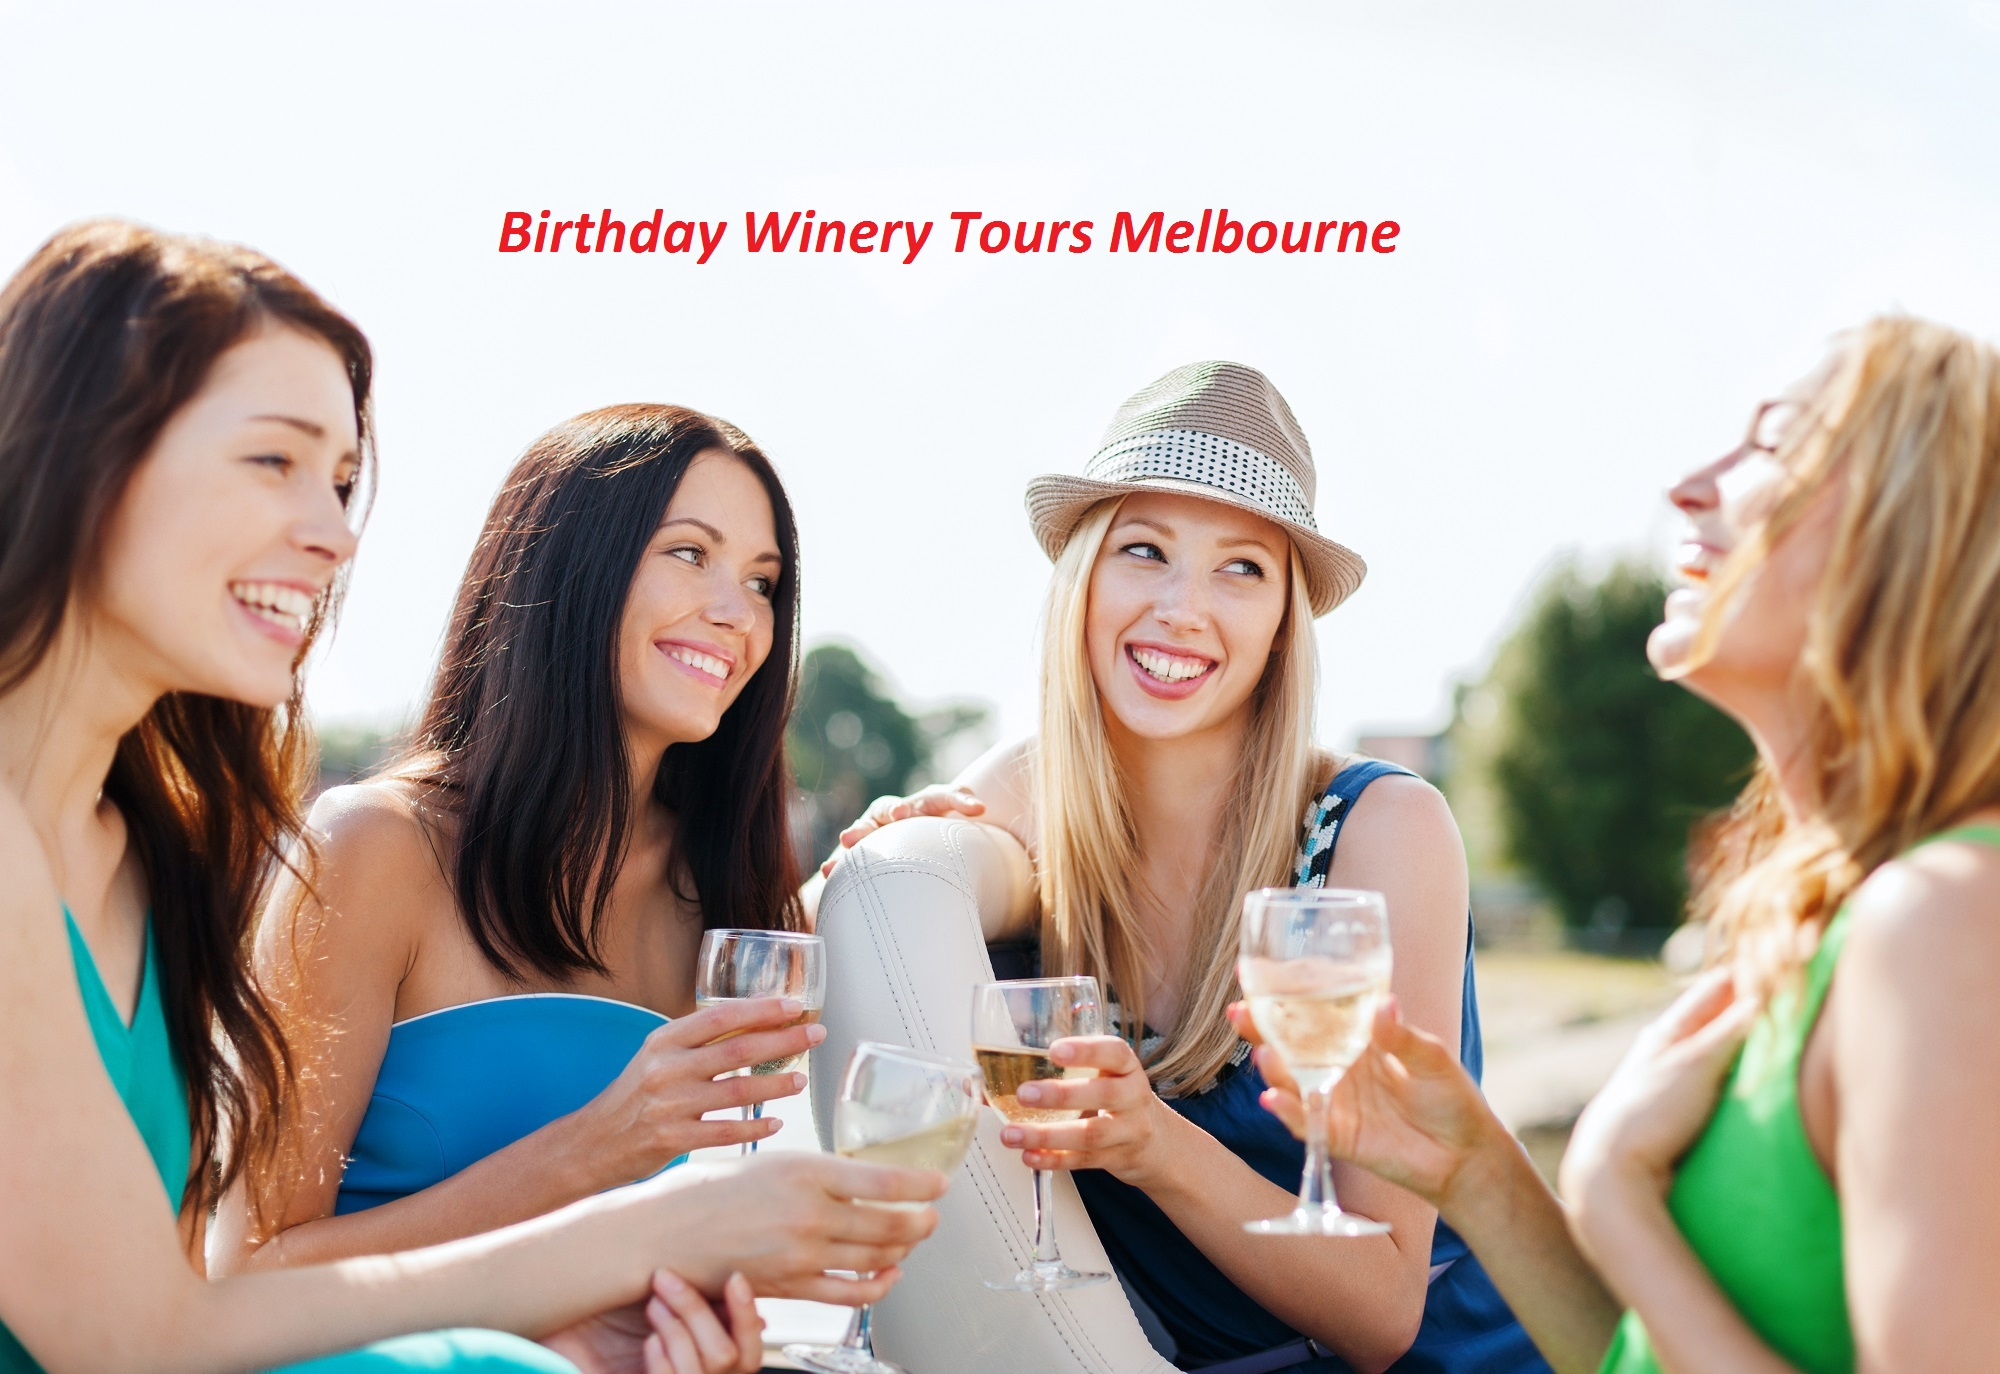 Birthday winery tours Melbourne